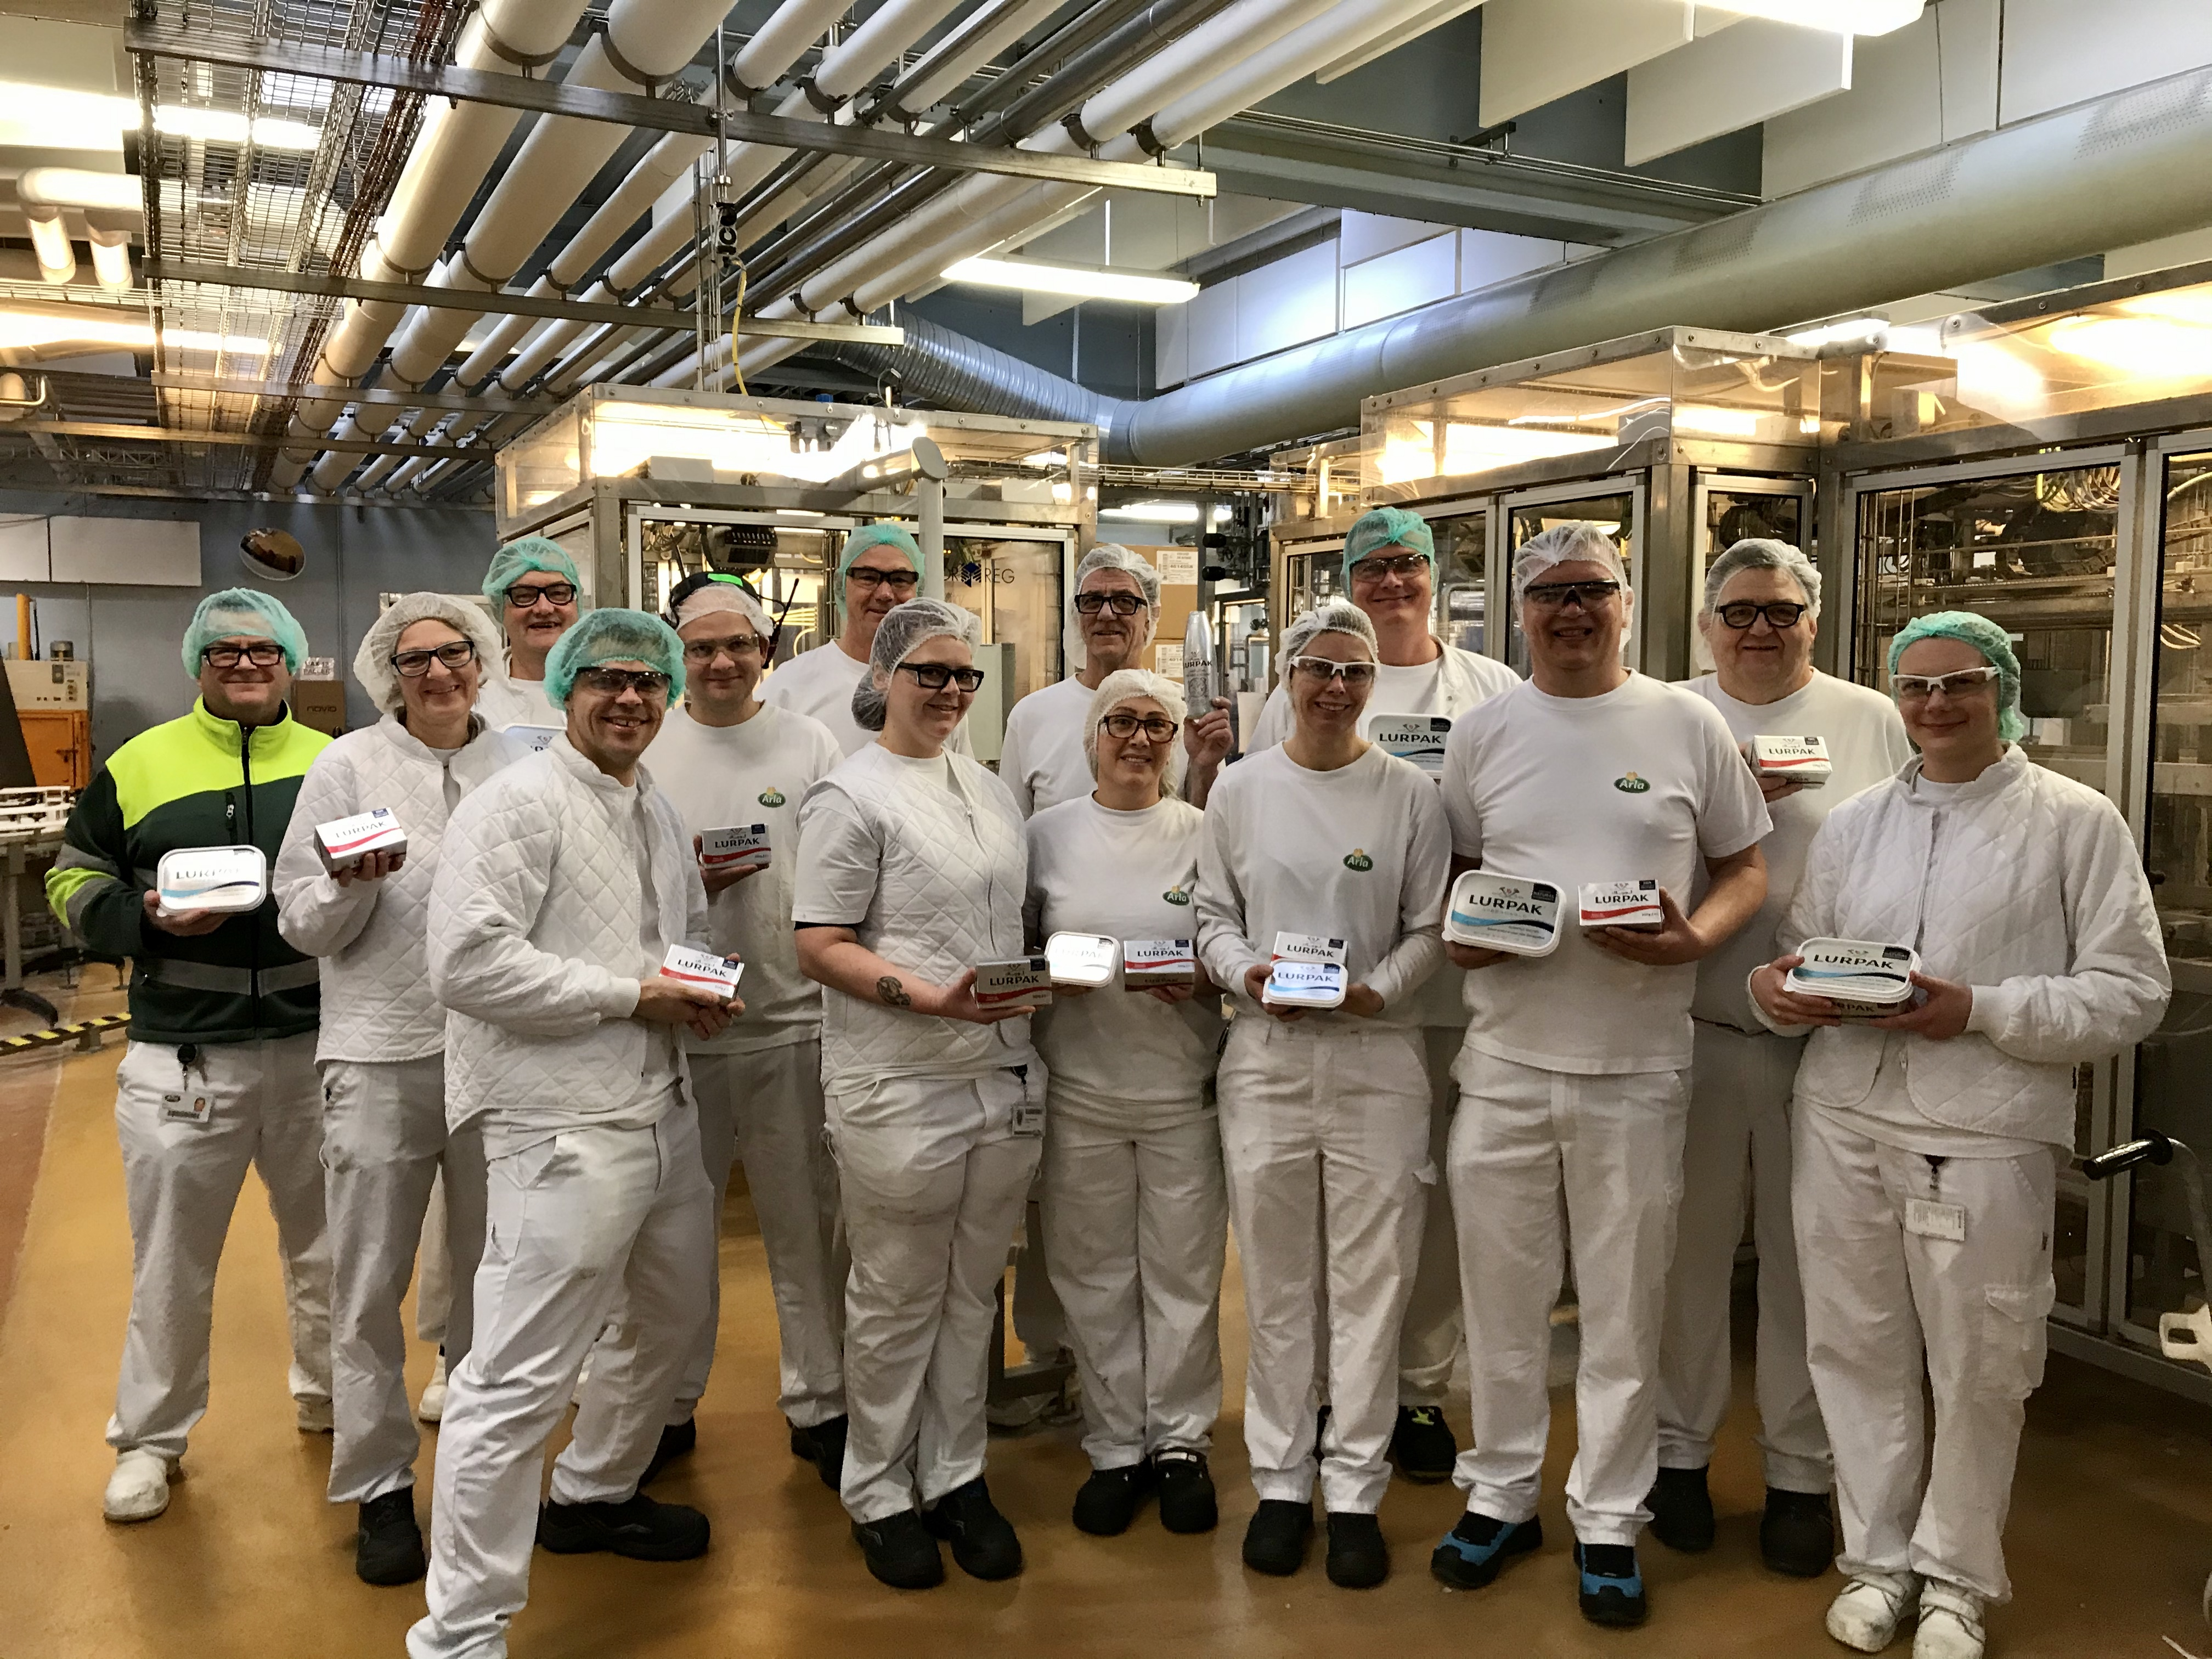 The employees at Holstebro Dairy had a particularly busy run-up to Christmas